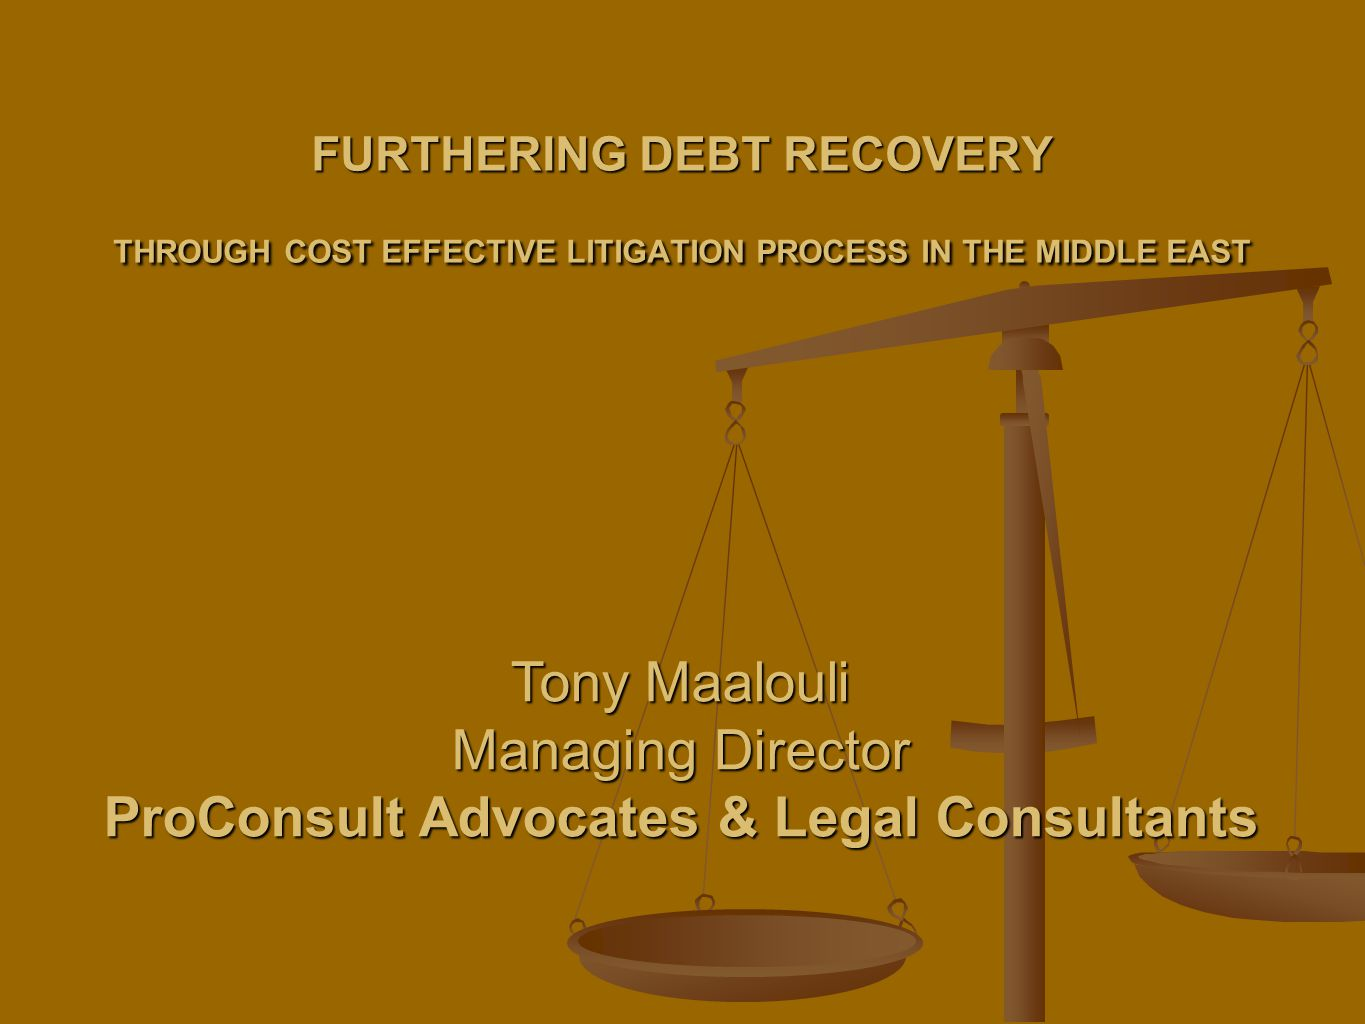 FURTHERING DEBT RECOVERY THROUGH COST EFFECTIVE LITIGATION PROCESS IN THE MIDDLE EAST Tony Maalouli Managing Director ProConsult Advocates & Legal Consultants